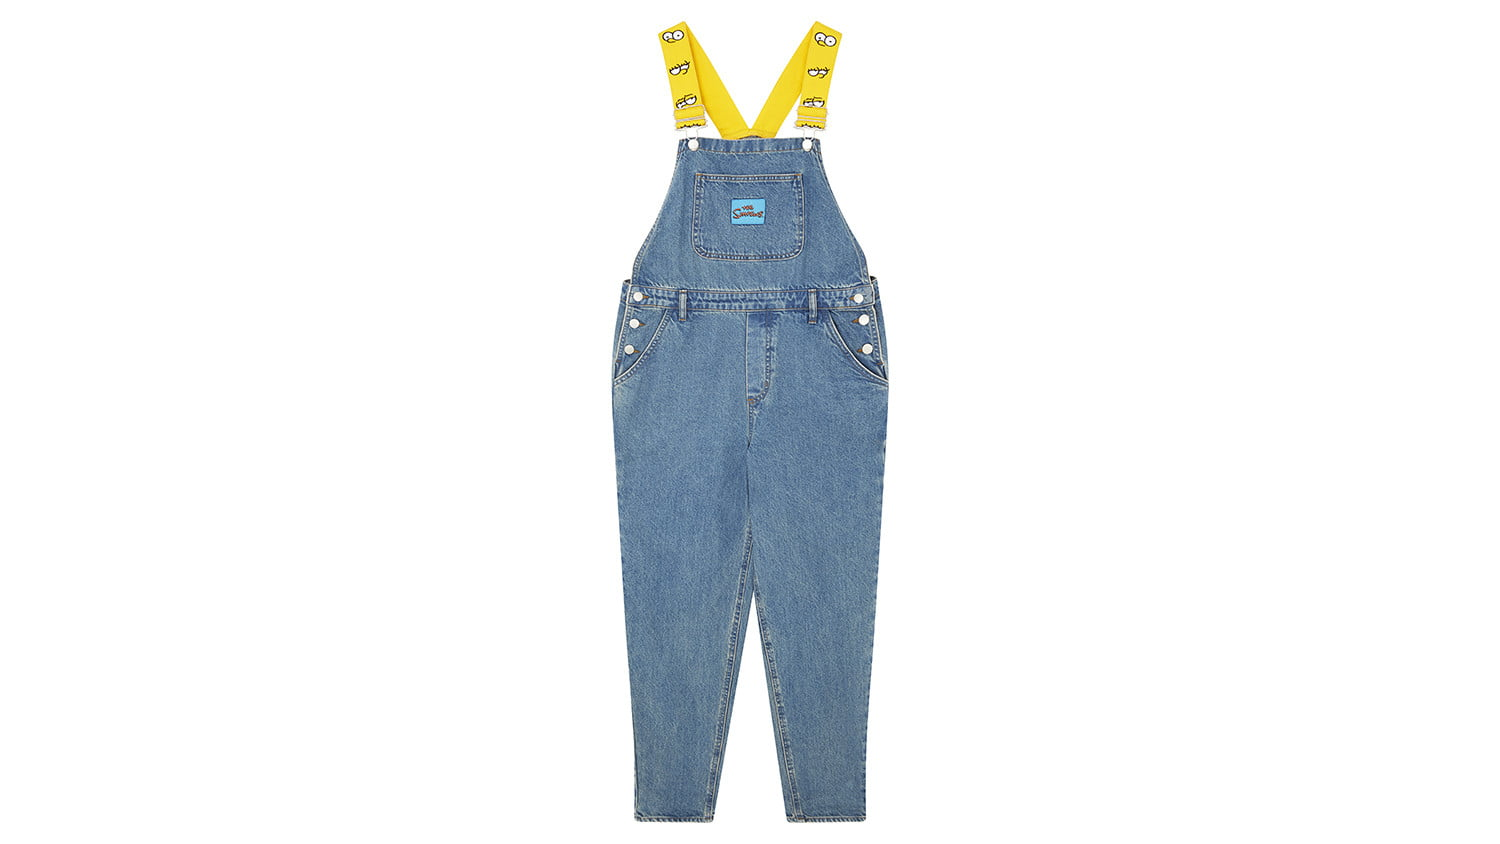 asos x the simpsons collection overalls